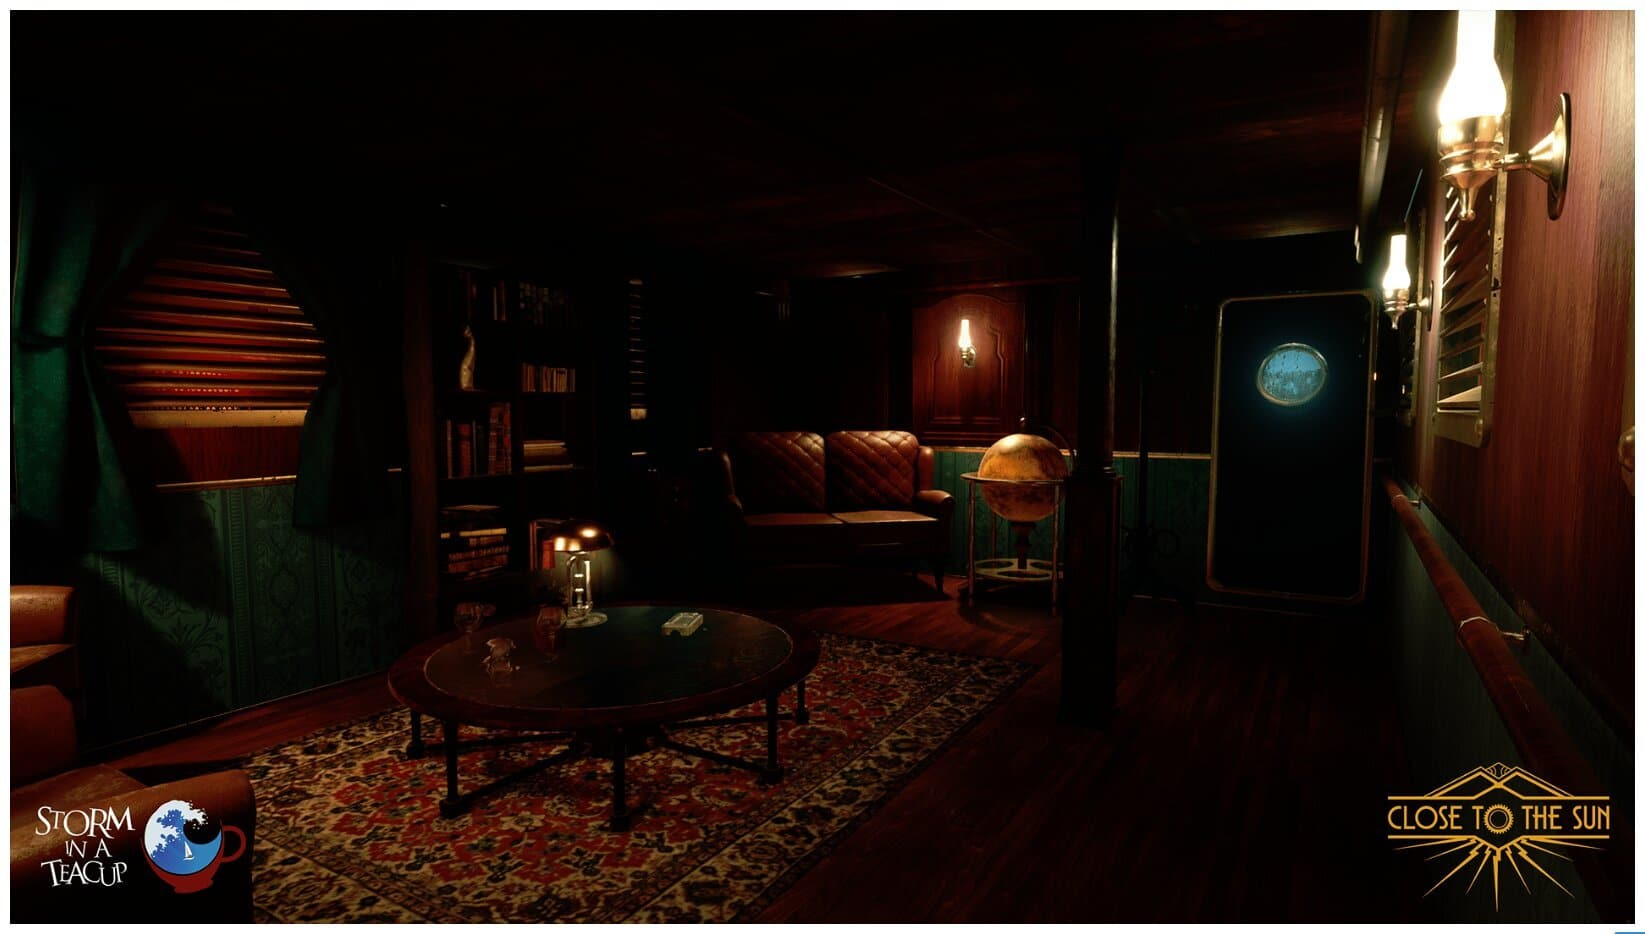 Image 8 : Close to the Sun, fils spirituel de Bioshock, passe à Unreal Engine 4, et c'est beau !